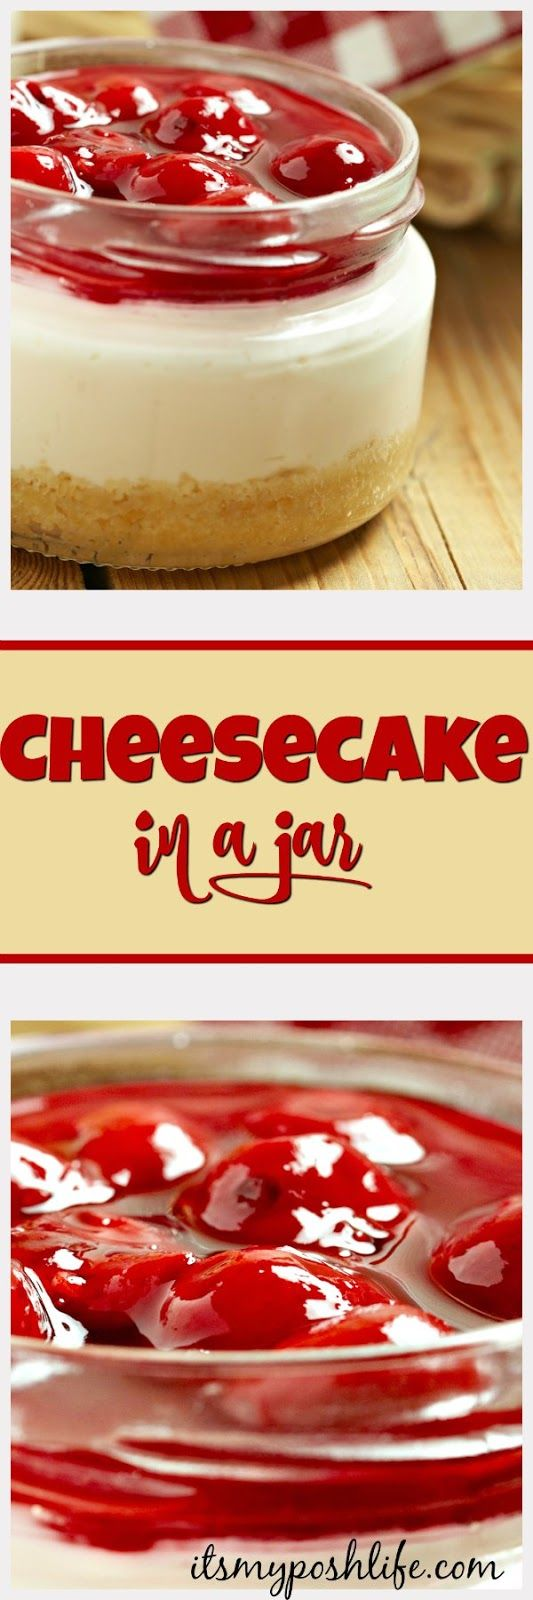 How to make Cheesecake in a Jar- this is so cool!